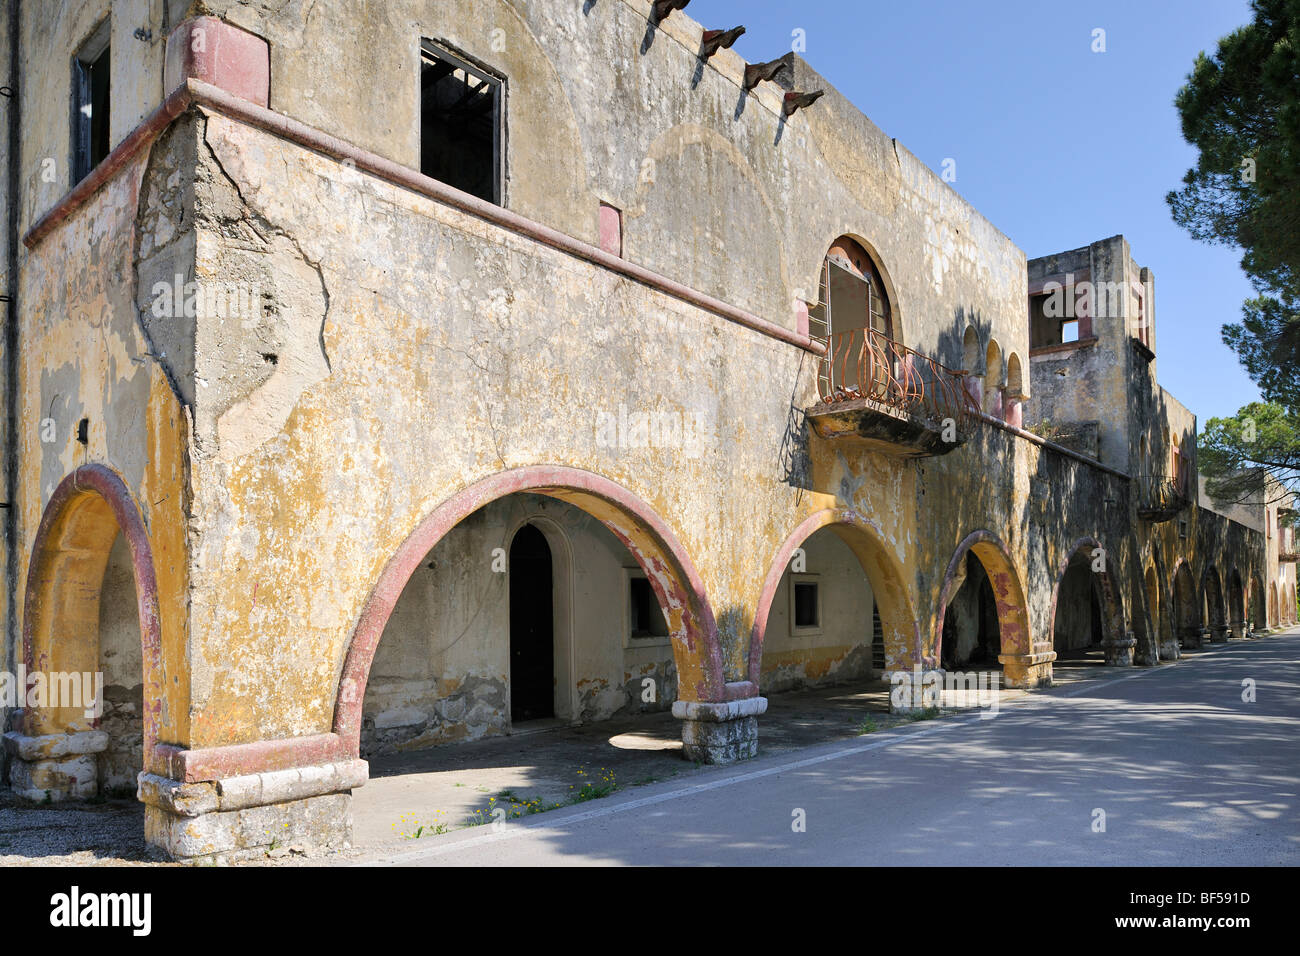 Dilapidated Italian palace of the governor, Eleoussa, Rhodes, Greece, Europe - Stock Image